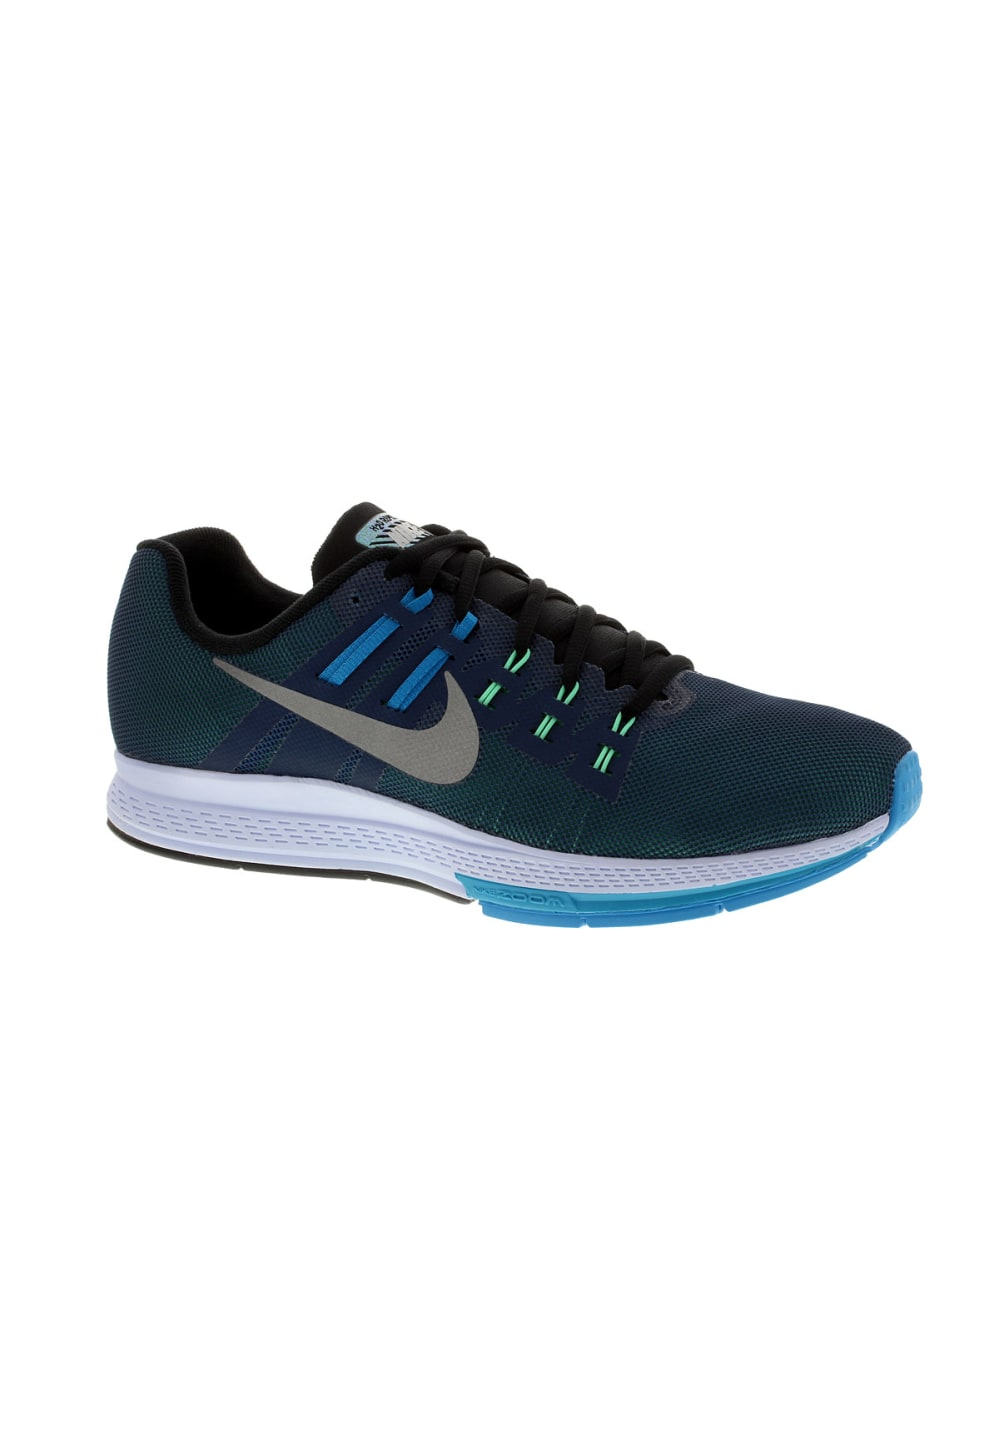 buy online 62f17 42806 Nike Air Zoom Structure 19 Flash - Running shoes for Men - Green